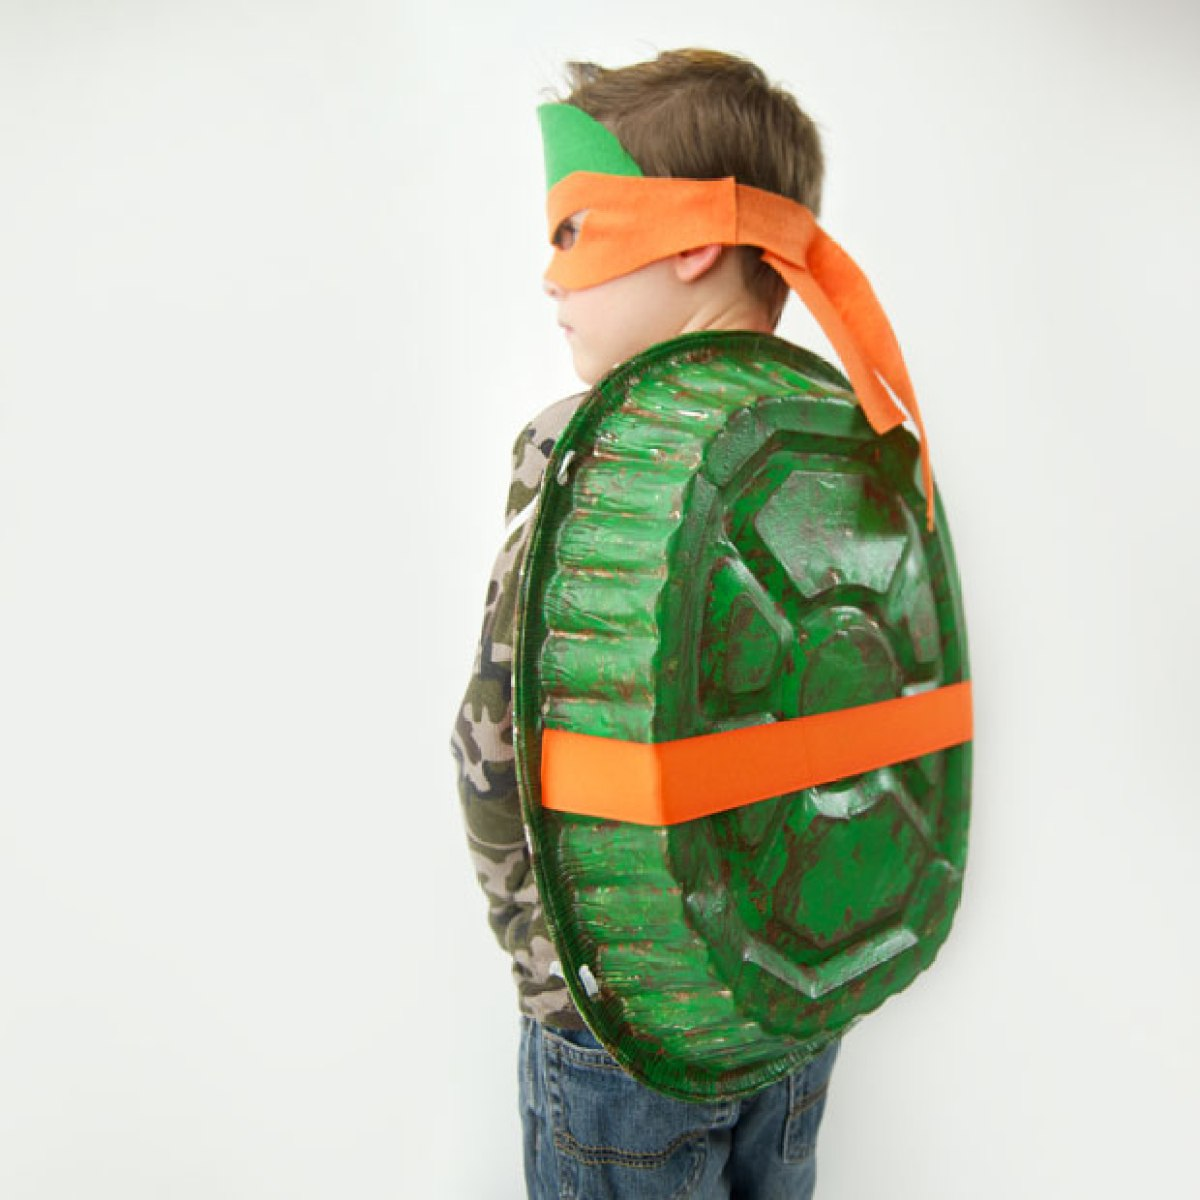 Teenage Mutant Ninja Turtle Costume